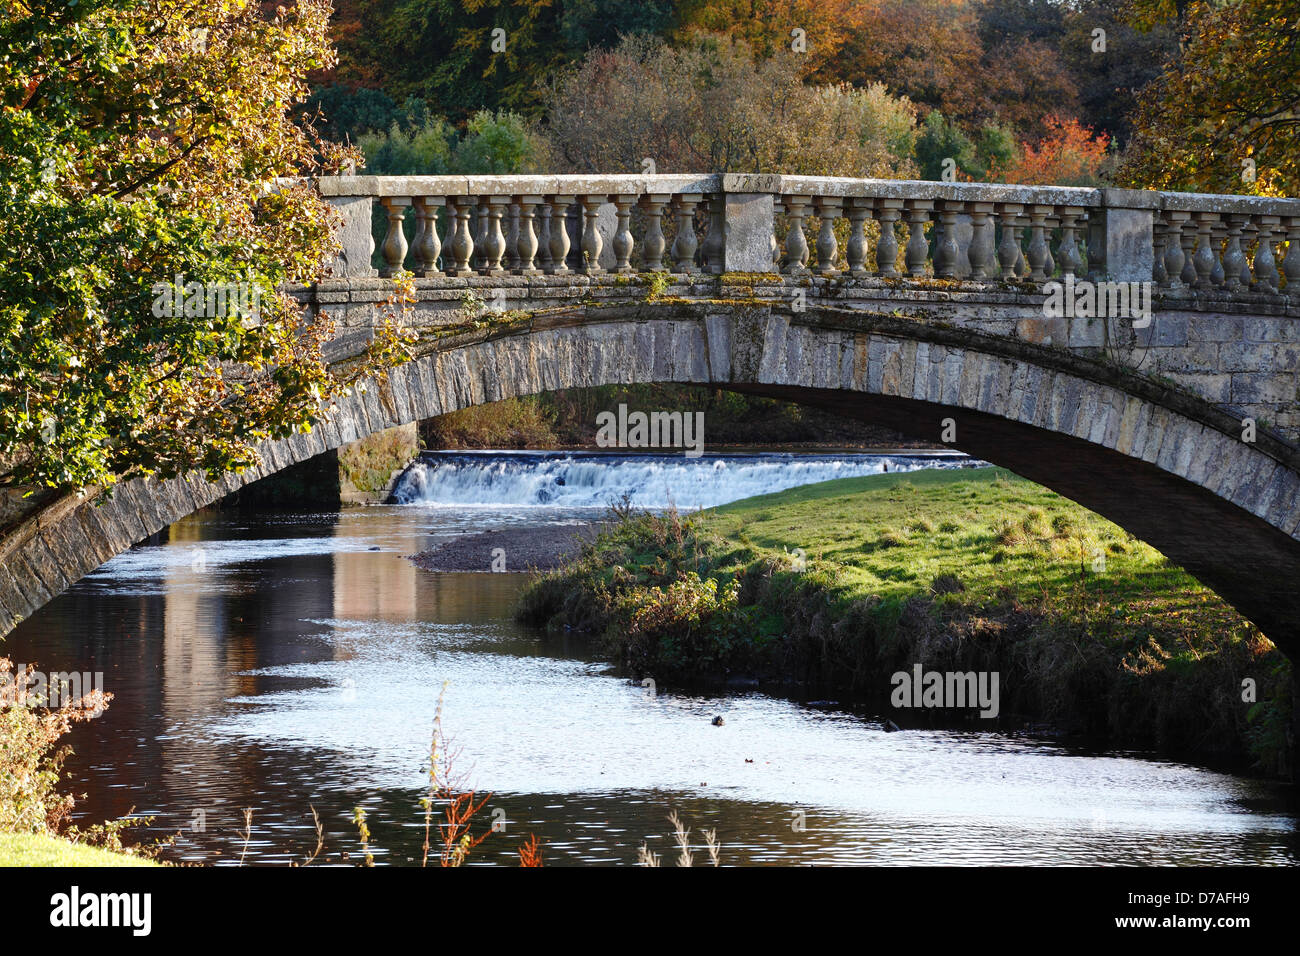 A stone bridge over the White Cart Water in Pollok Country Park in Glasgow, Scotland, UK - Stock Image